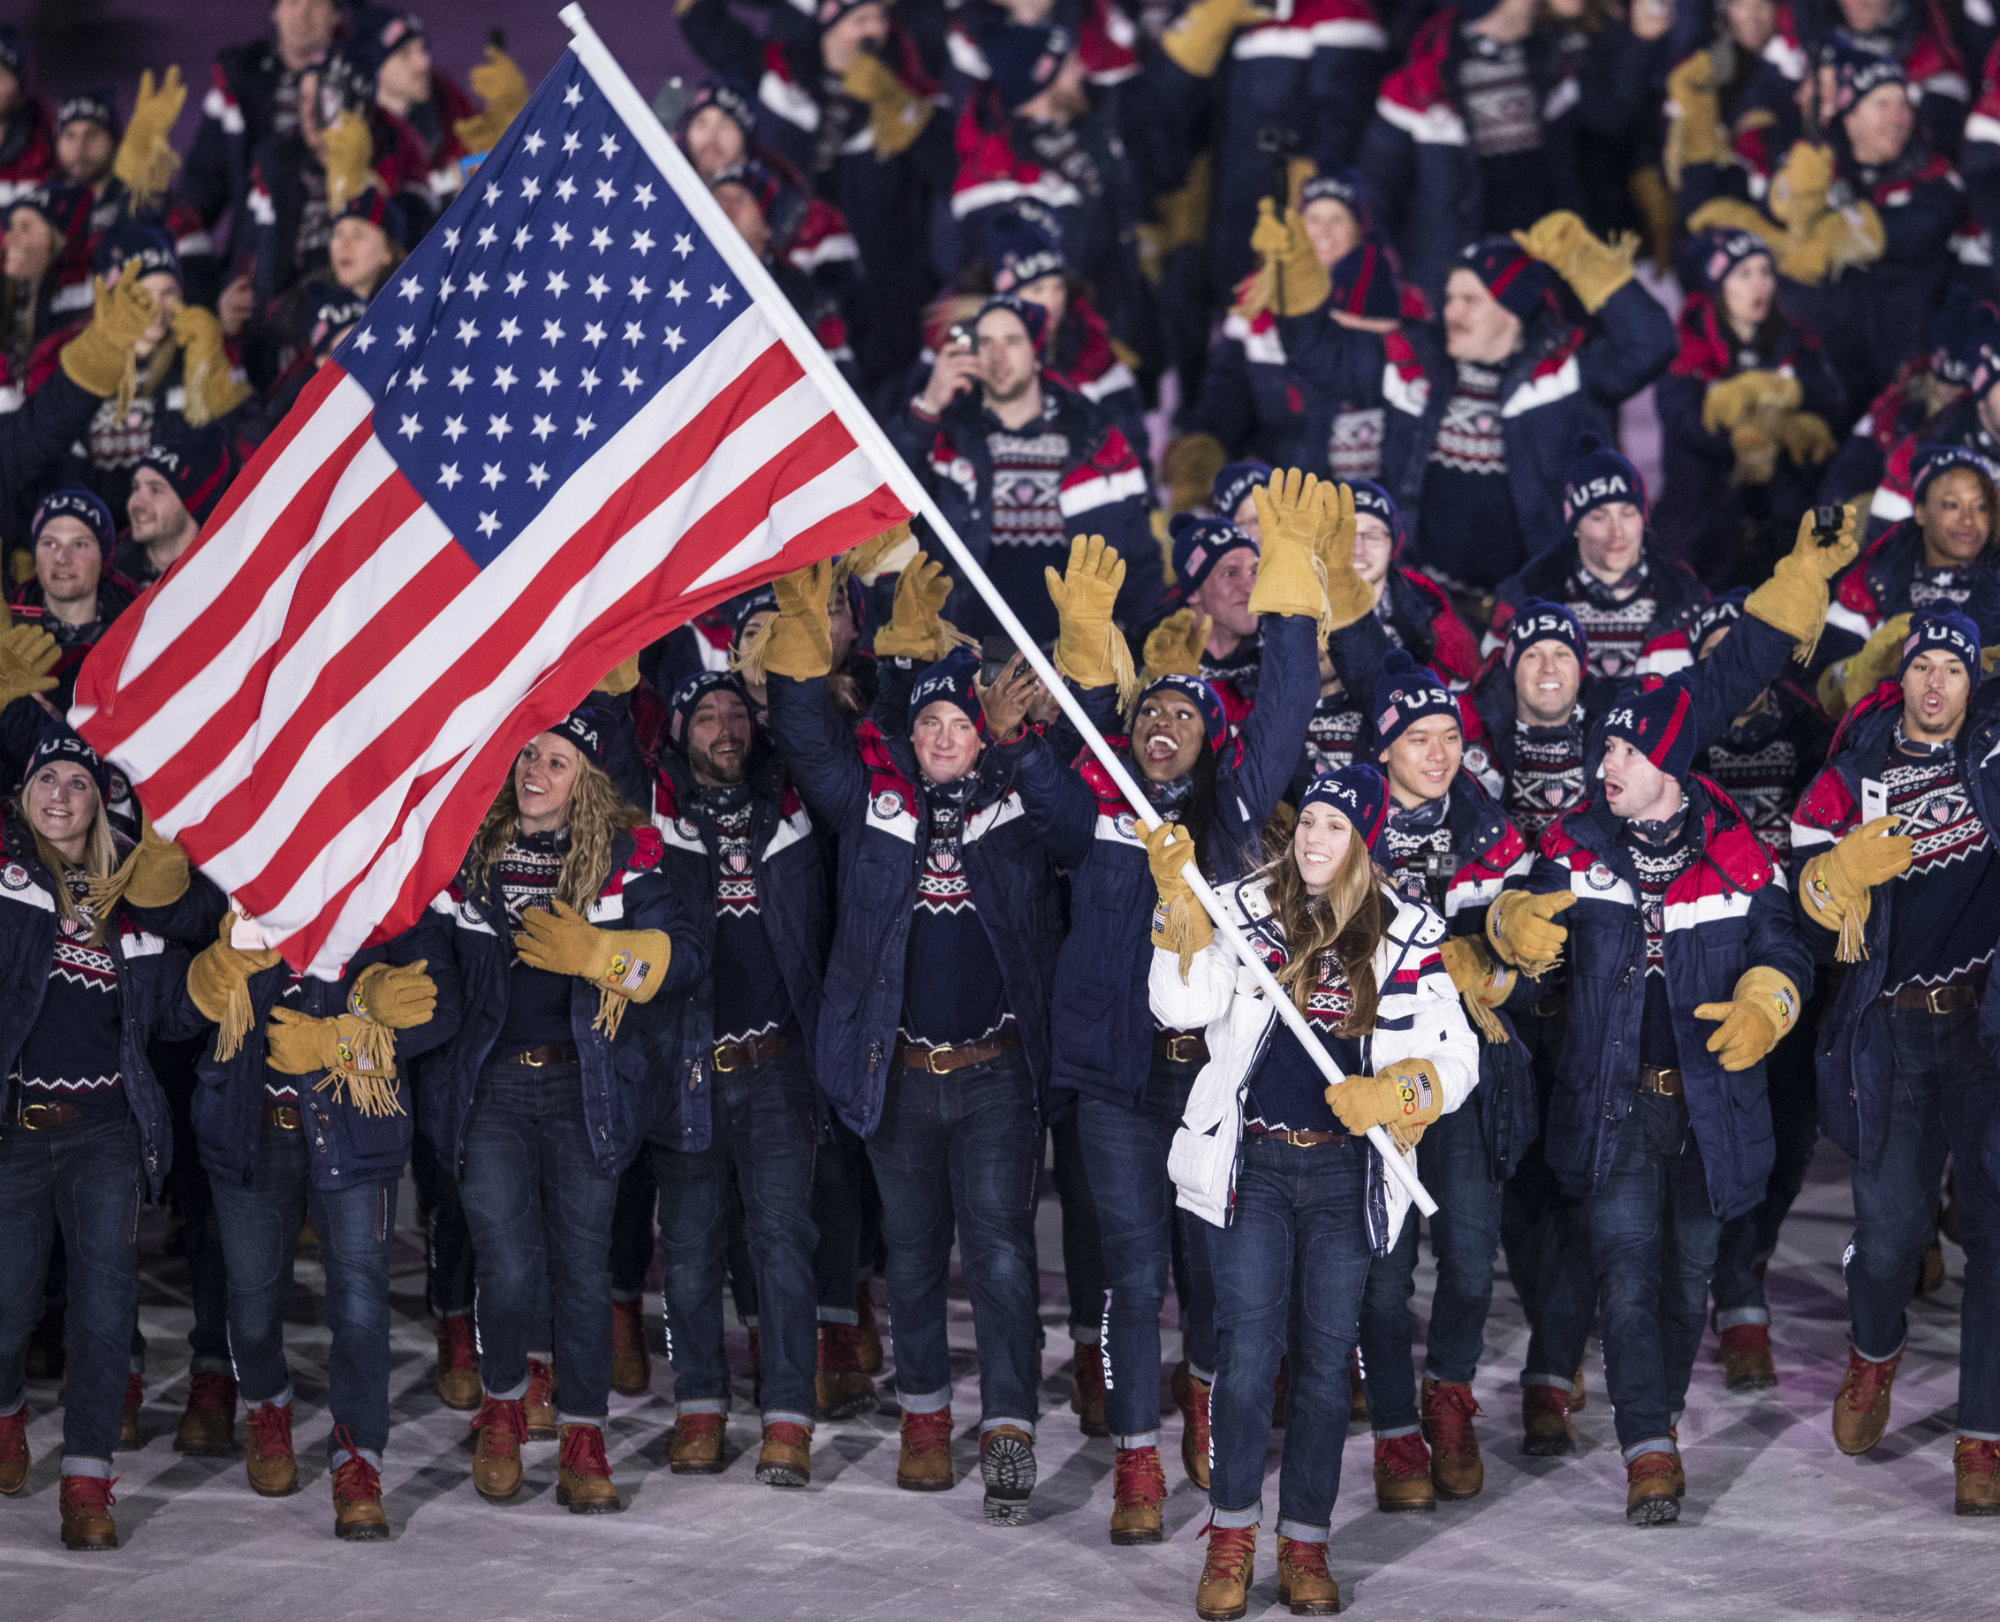 Team USA Opening Ceremony - Lead